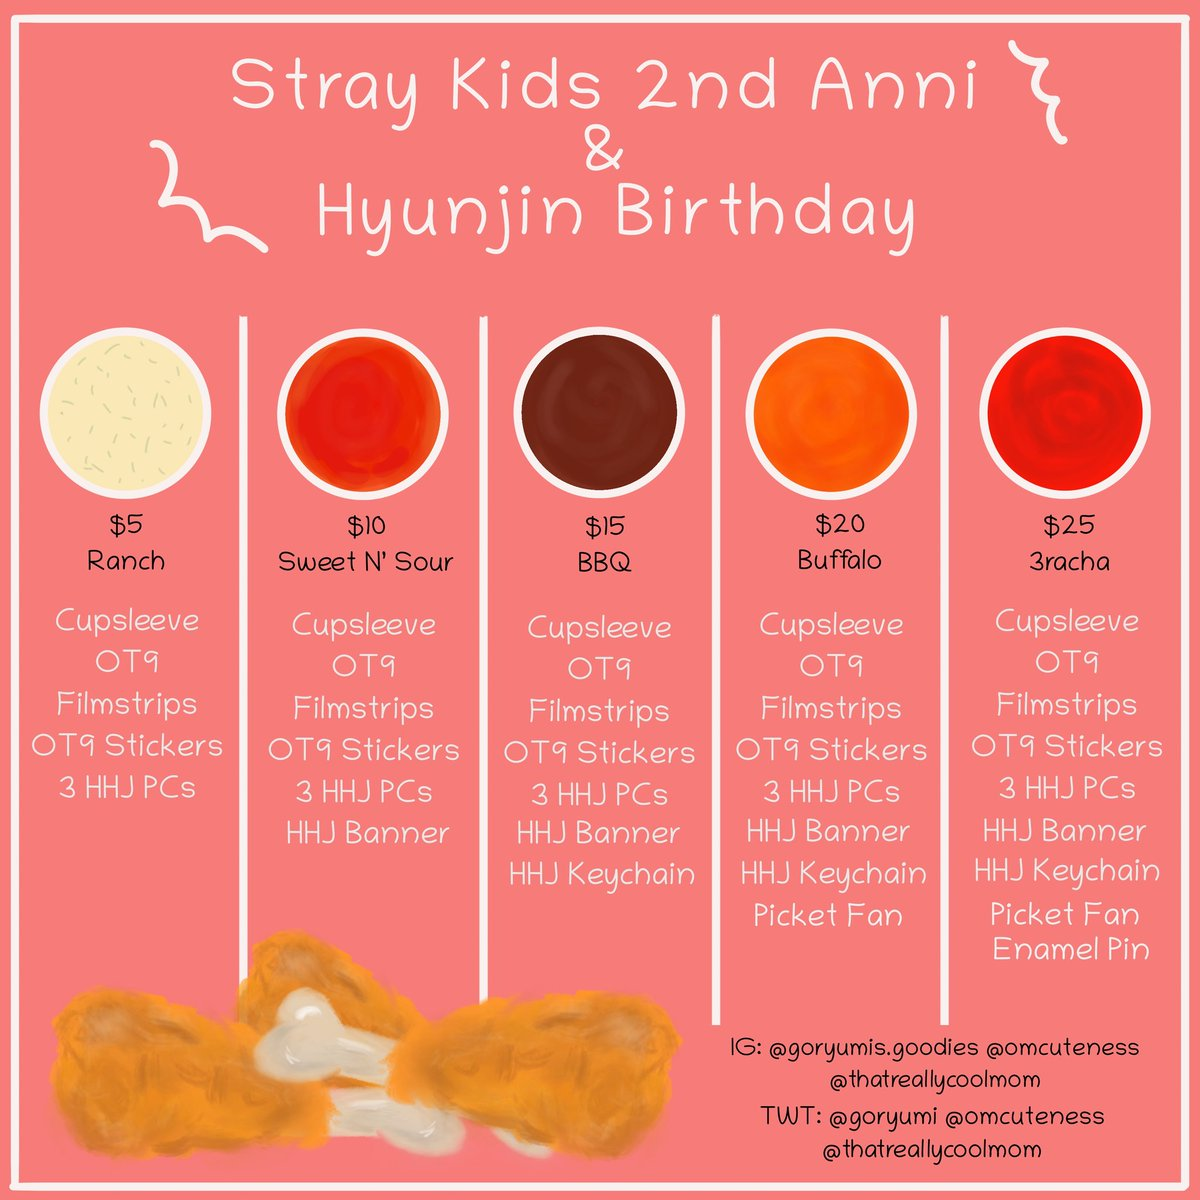 STRAY KIDS 2ND ANNIVERSARY x HYUNJINS BDAY CAFE Donation Form: bit.ly/skzcafeFORM Deadline: January 31st, 11:59PM -- #straykids_levanter #StrayKids_GoneDays #Straykidsfanart #straykidsworldtour #straykidsnyc #straykidsunlock #straykidscafe #skzunlockinnyc #hyunjincafe